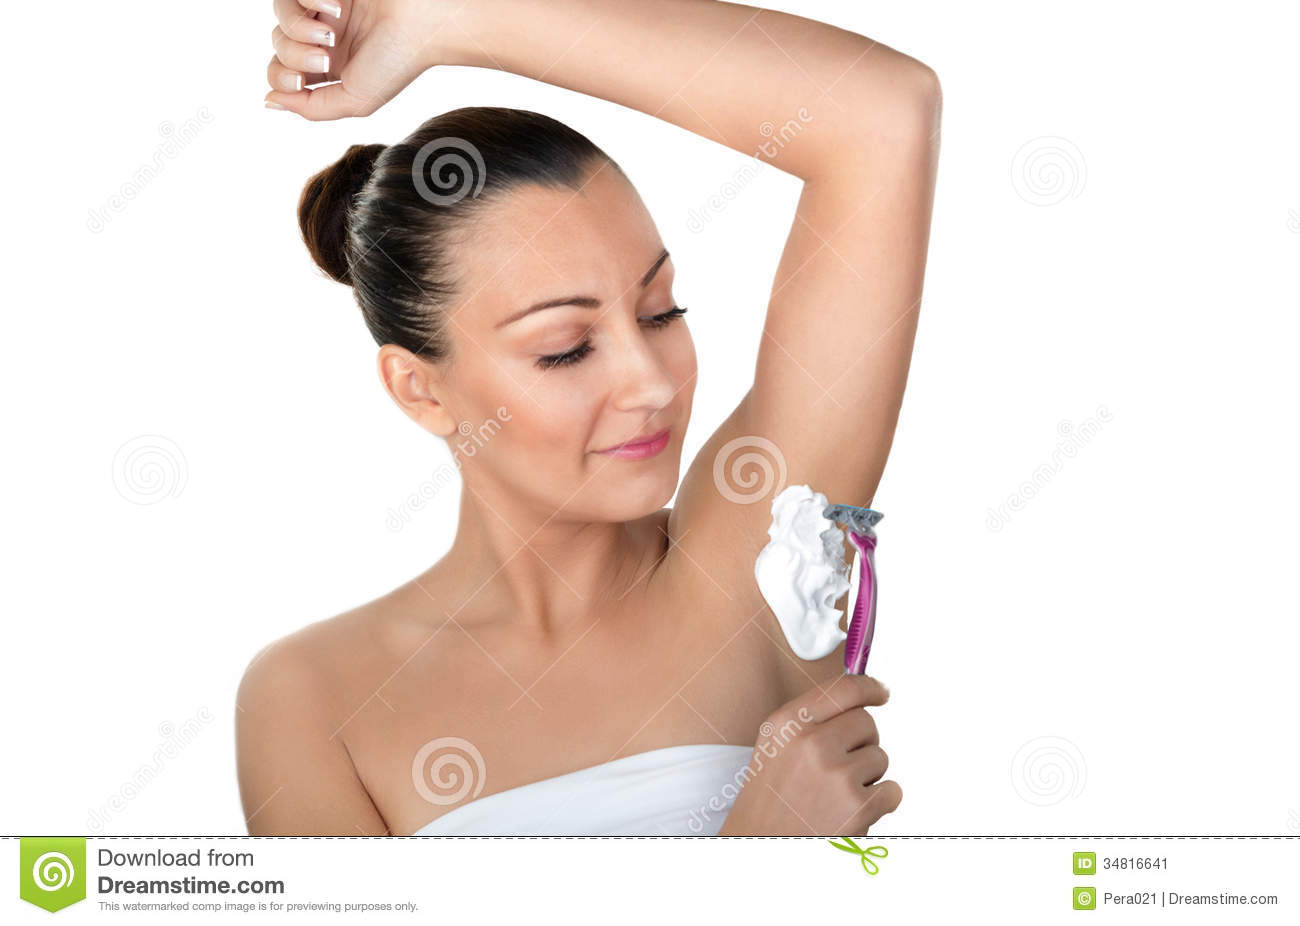 Female shaved armpits